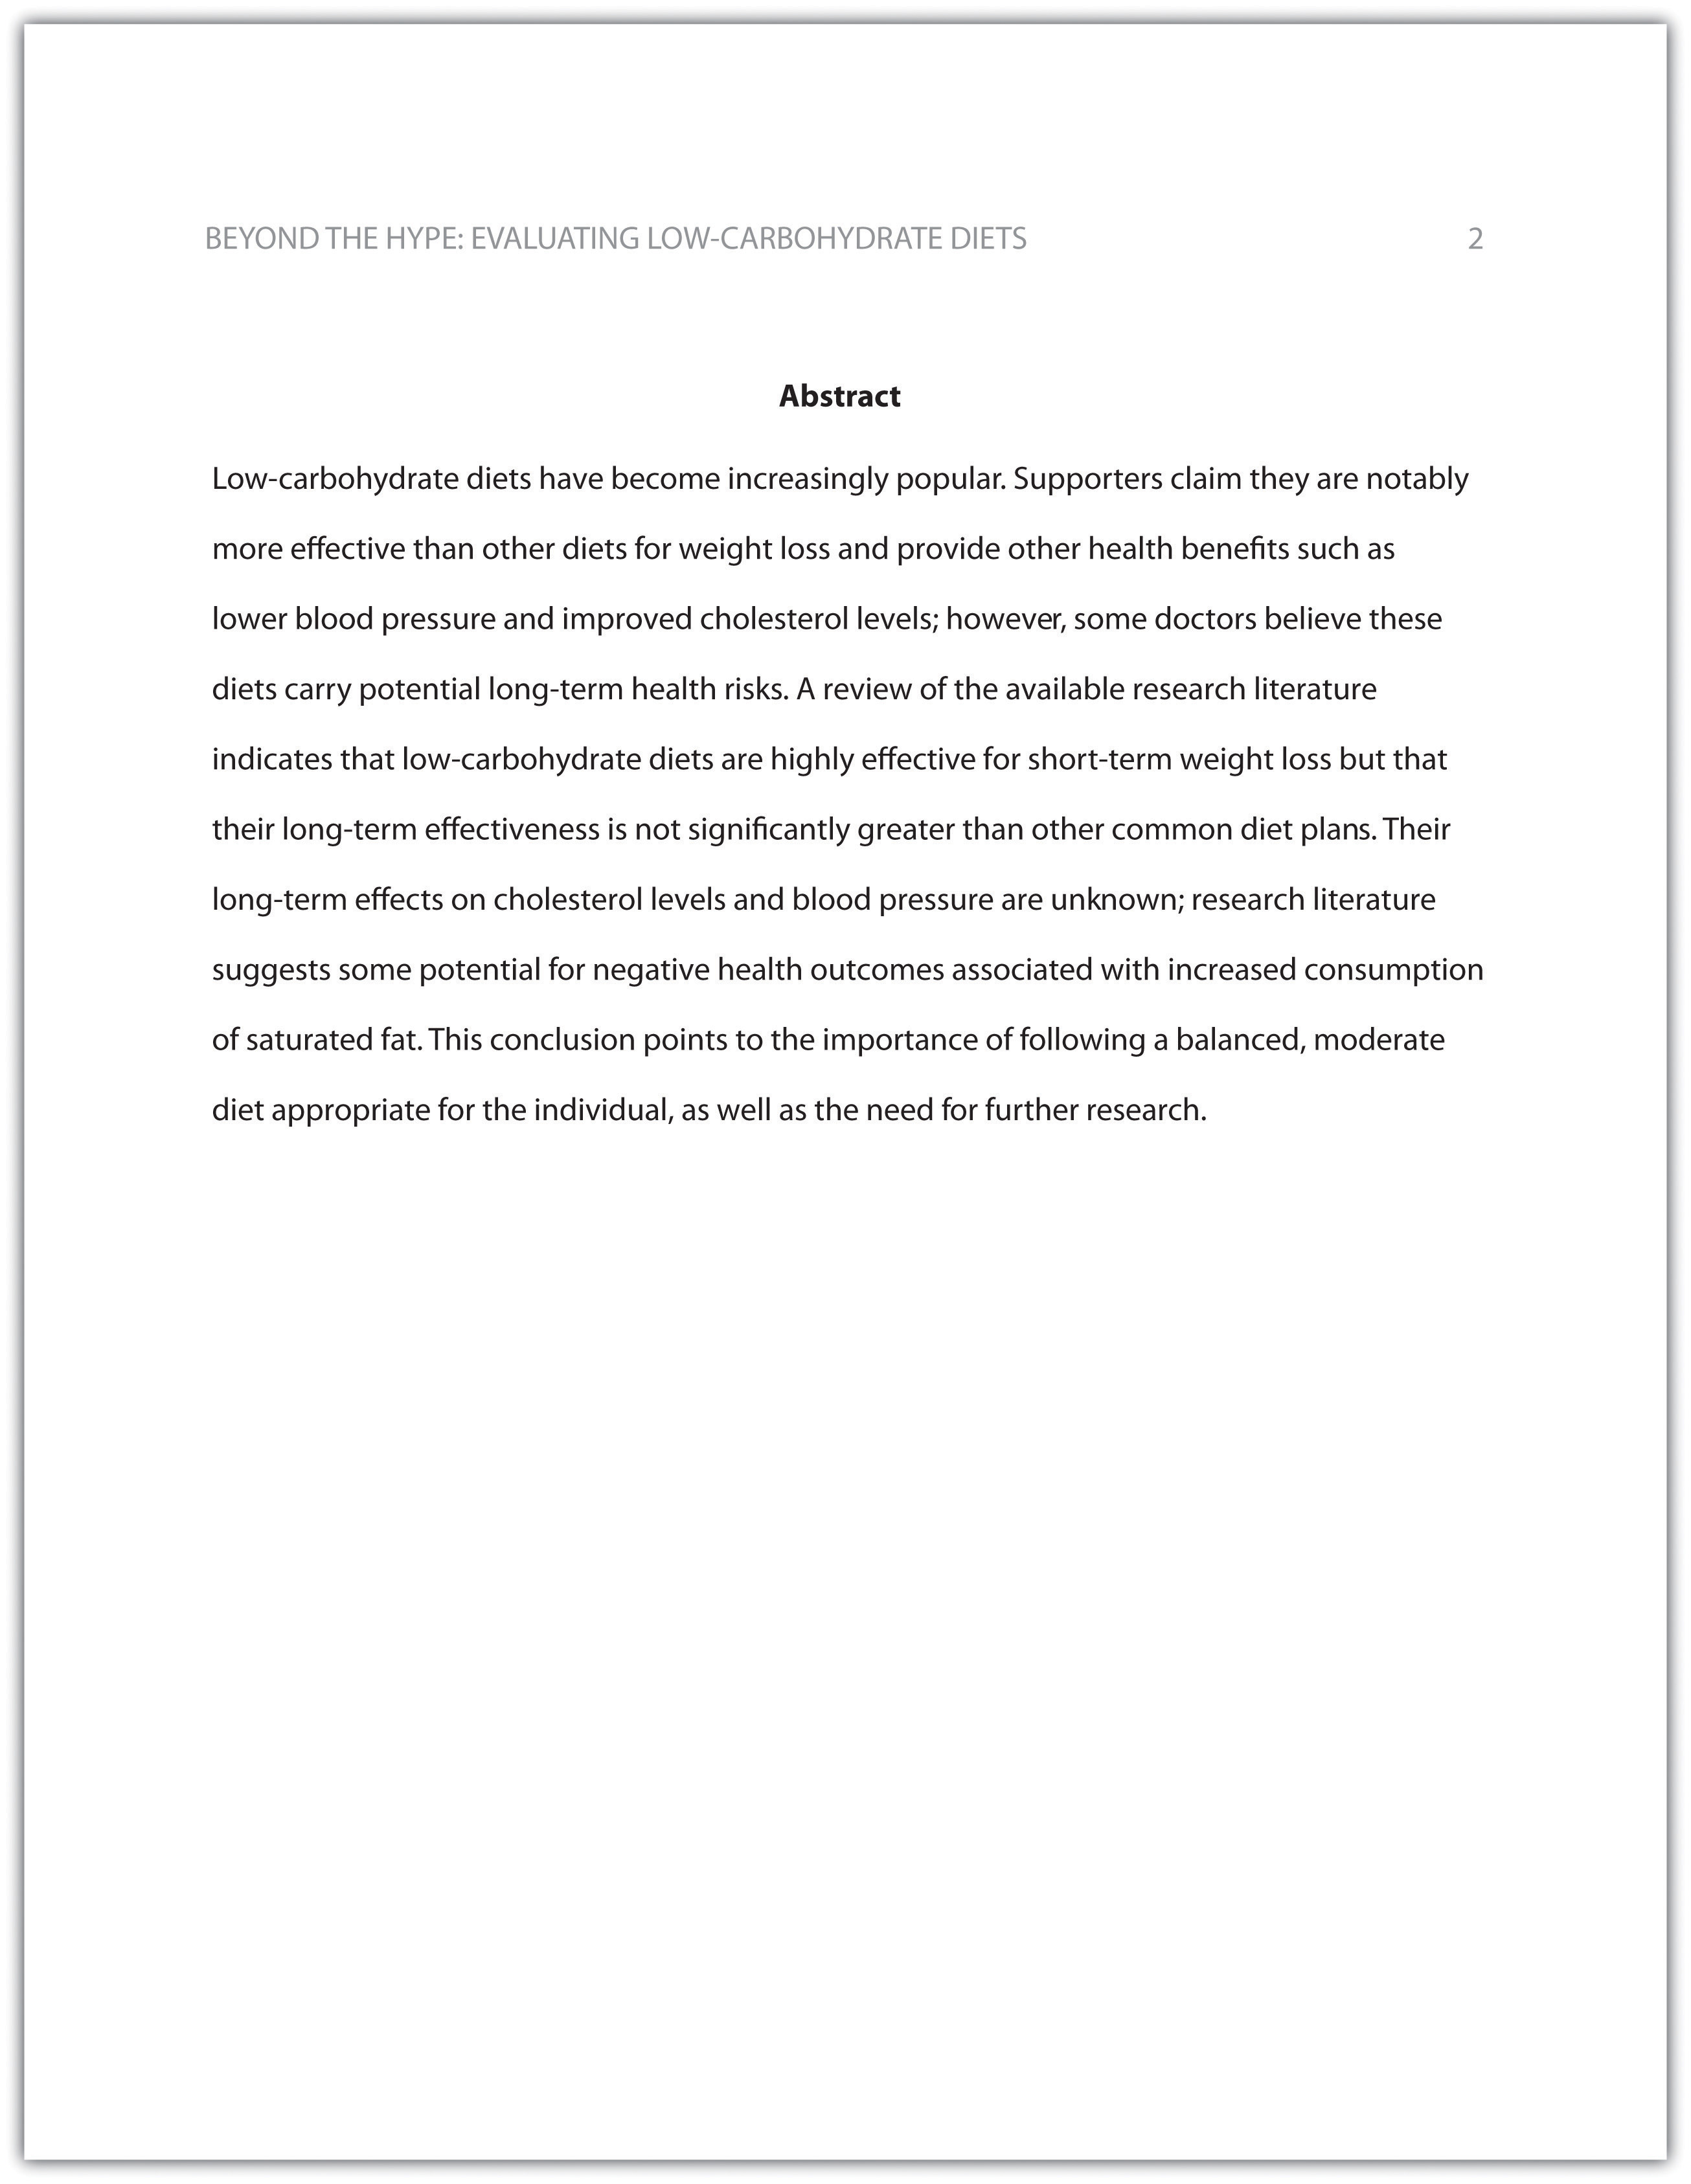 014 Research Paper College English Incredible Ideas Full